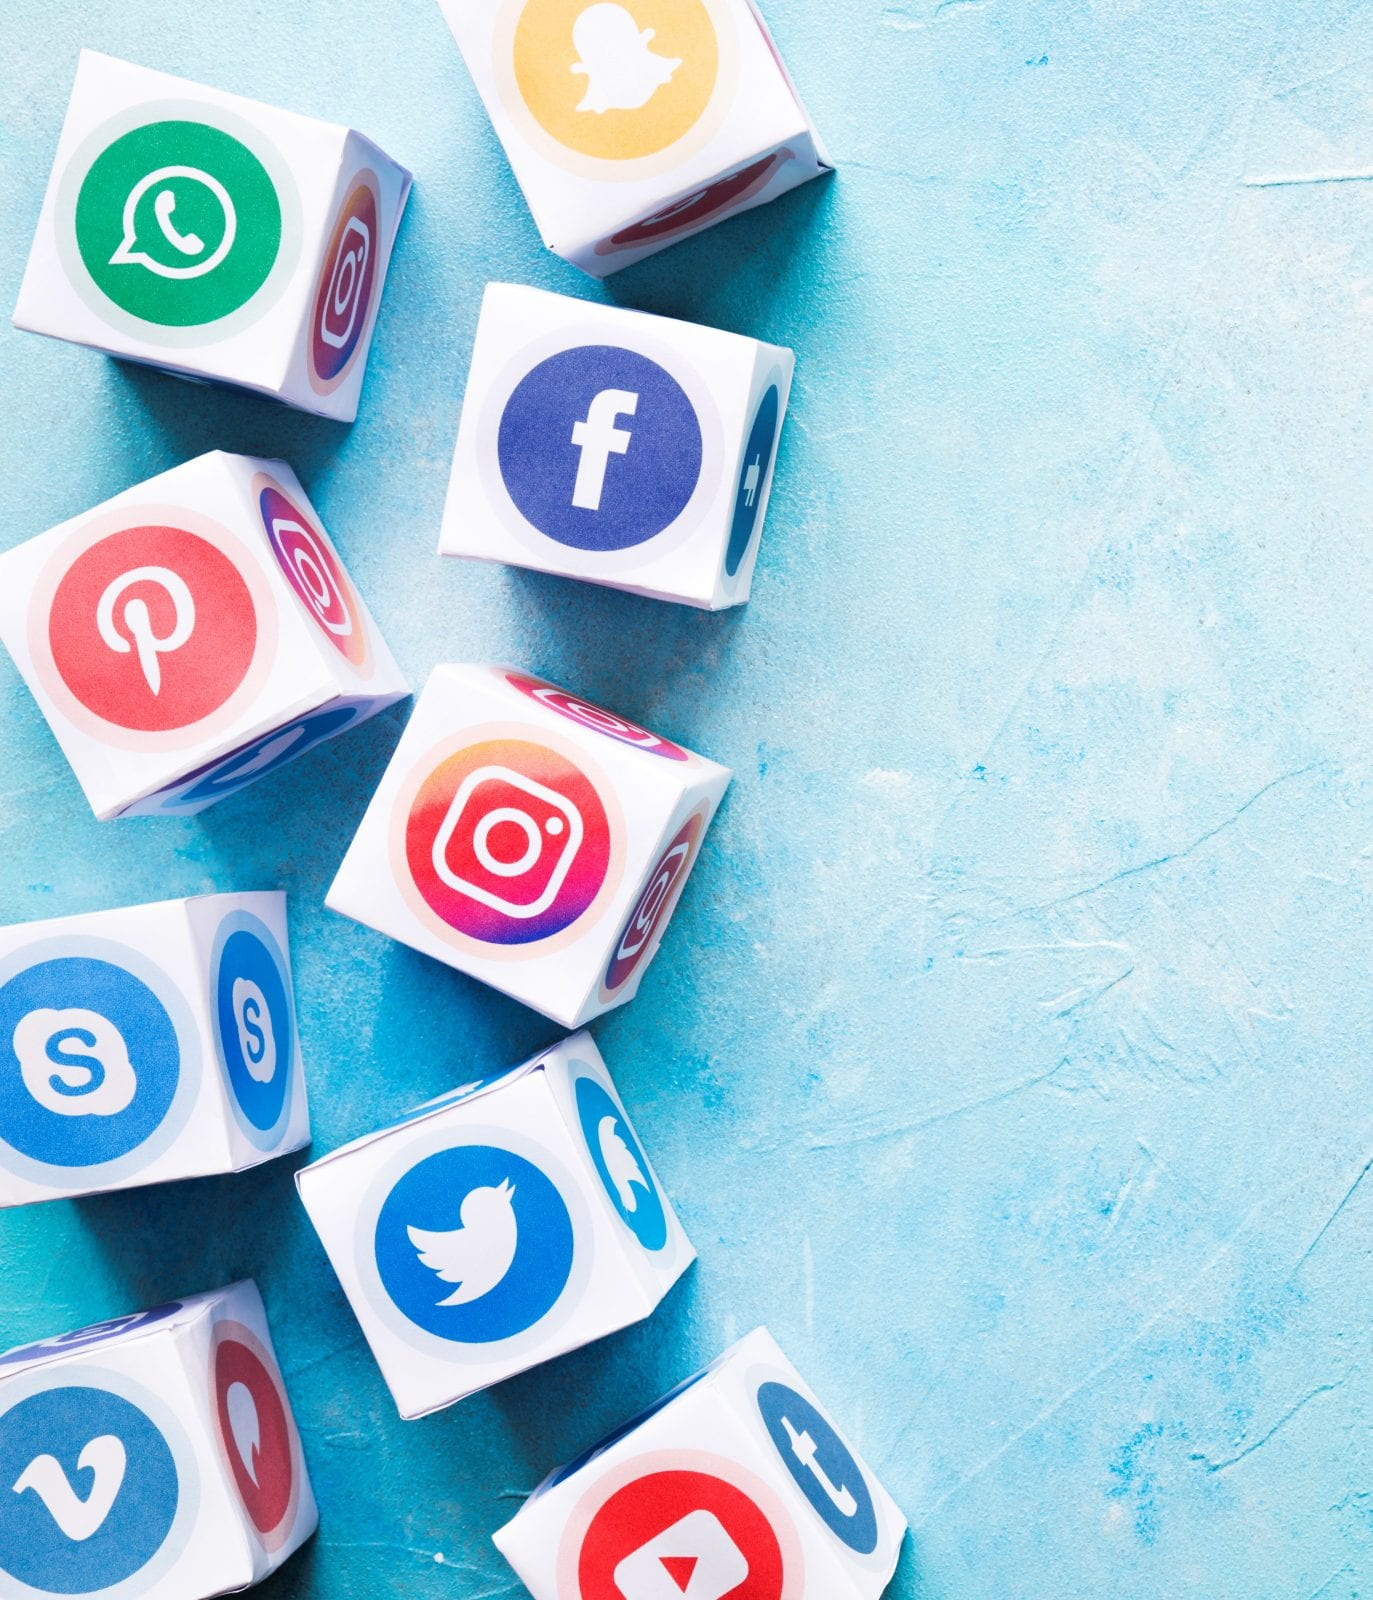 social media growth hack in 2019, Social Media Hacks that will make your business grow fast in 2019, Social Media Hacks that will make your business grow fast, Social Media Hacks that will make your business grow fast in 2019, social media marketinh hacks 2019, social media hacks, social media hacks in 2019, instagram marketing hacks 2019, instagram amrketing hacks